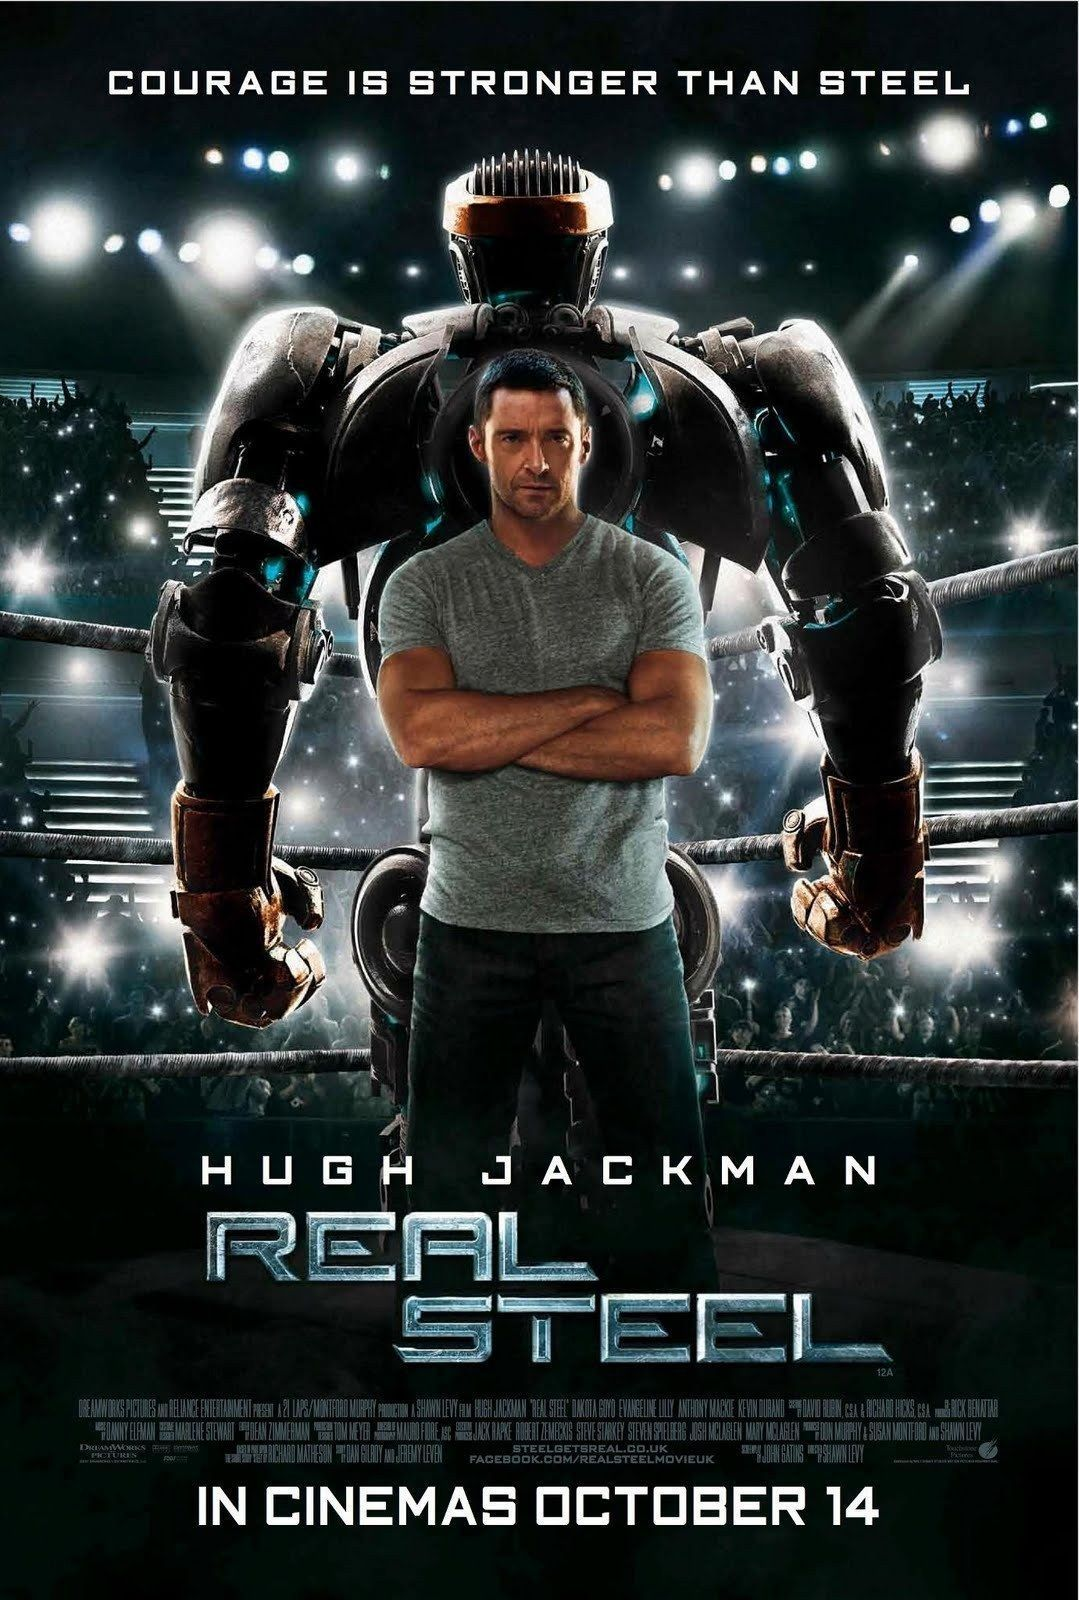 Do You Want To Download Real Steel Directly To Your Device Then